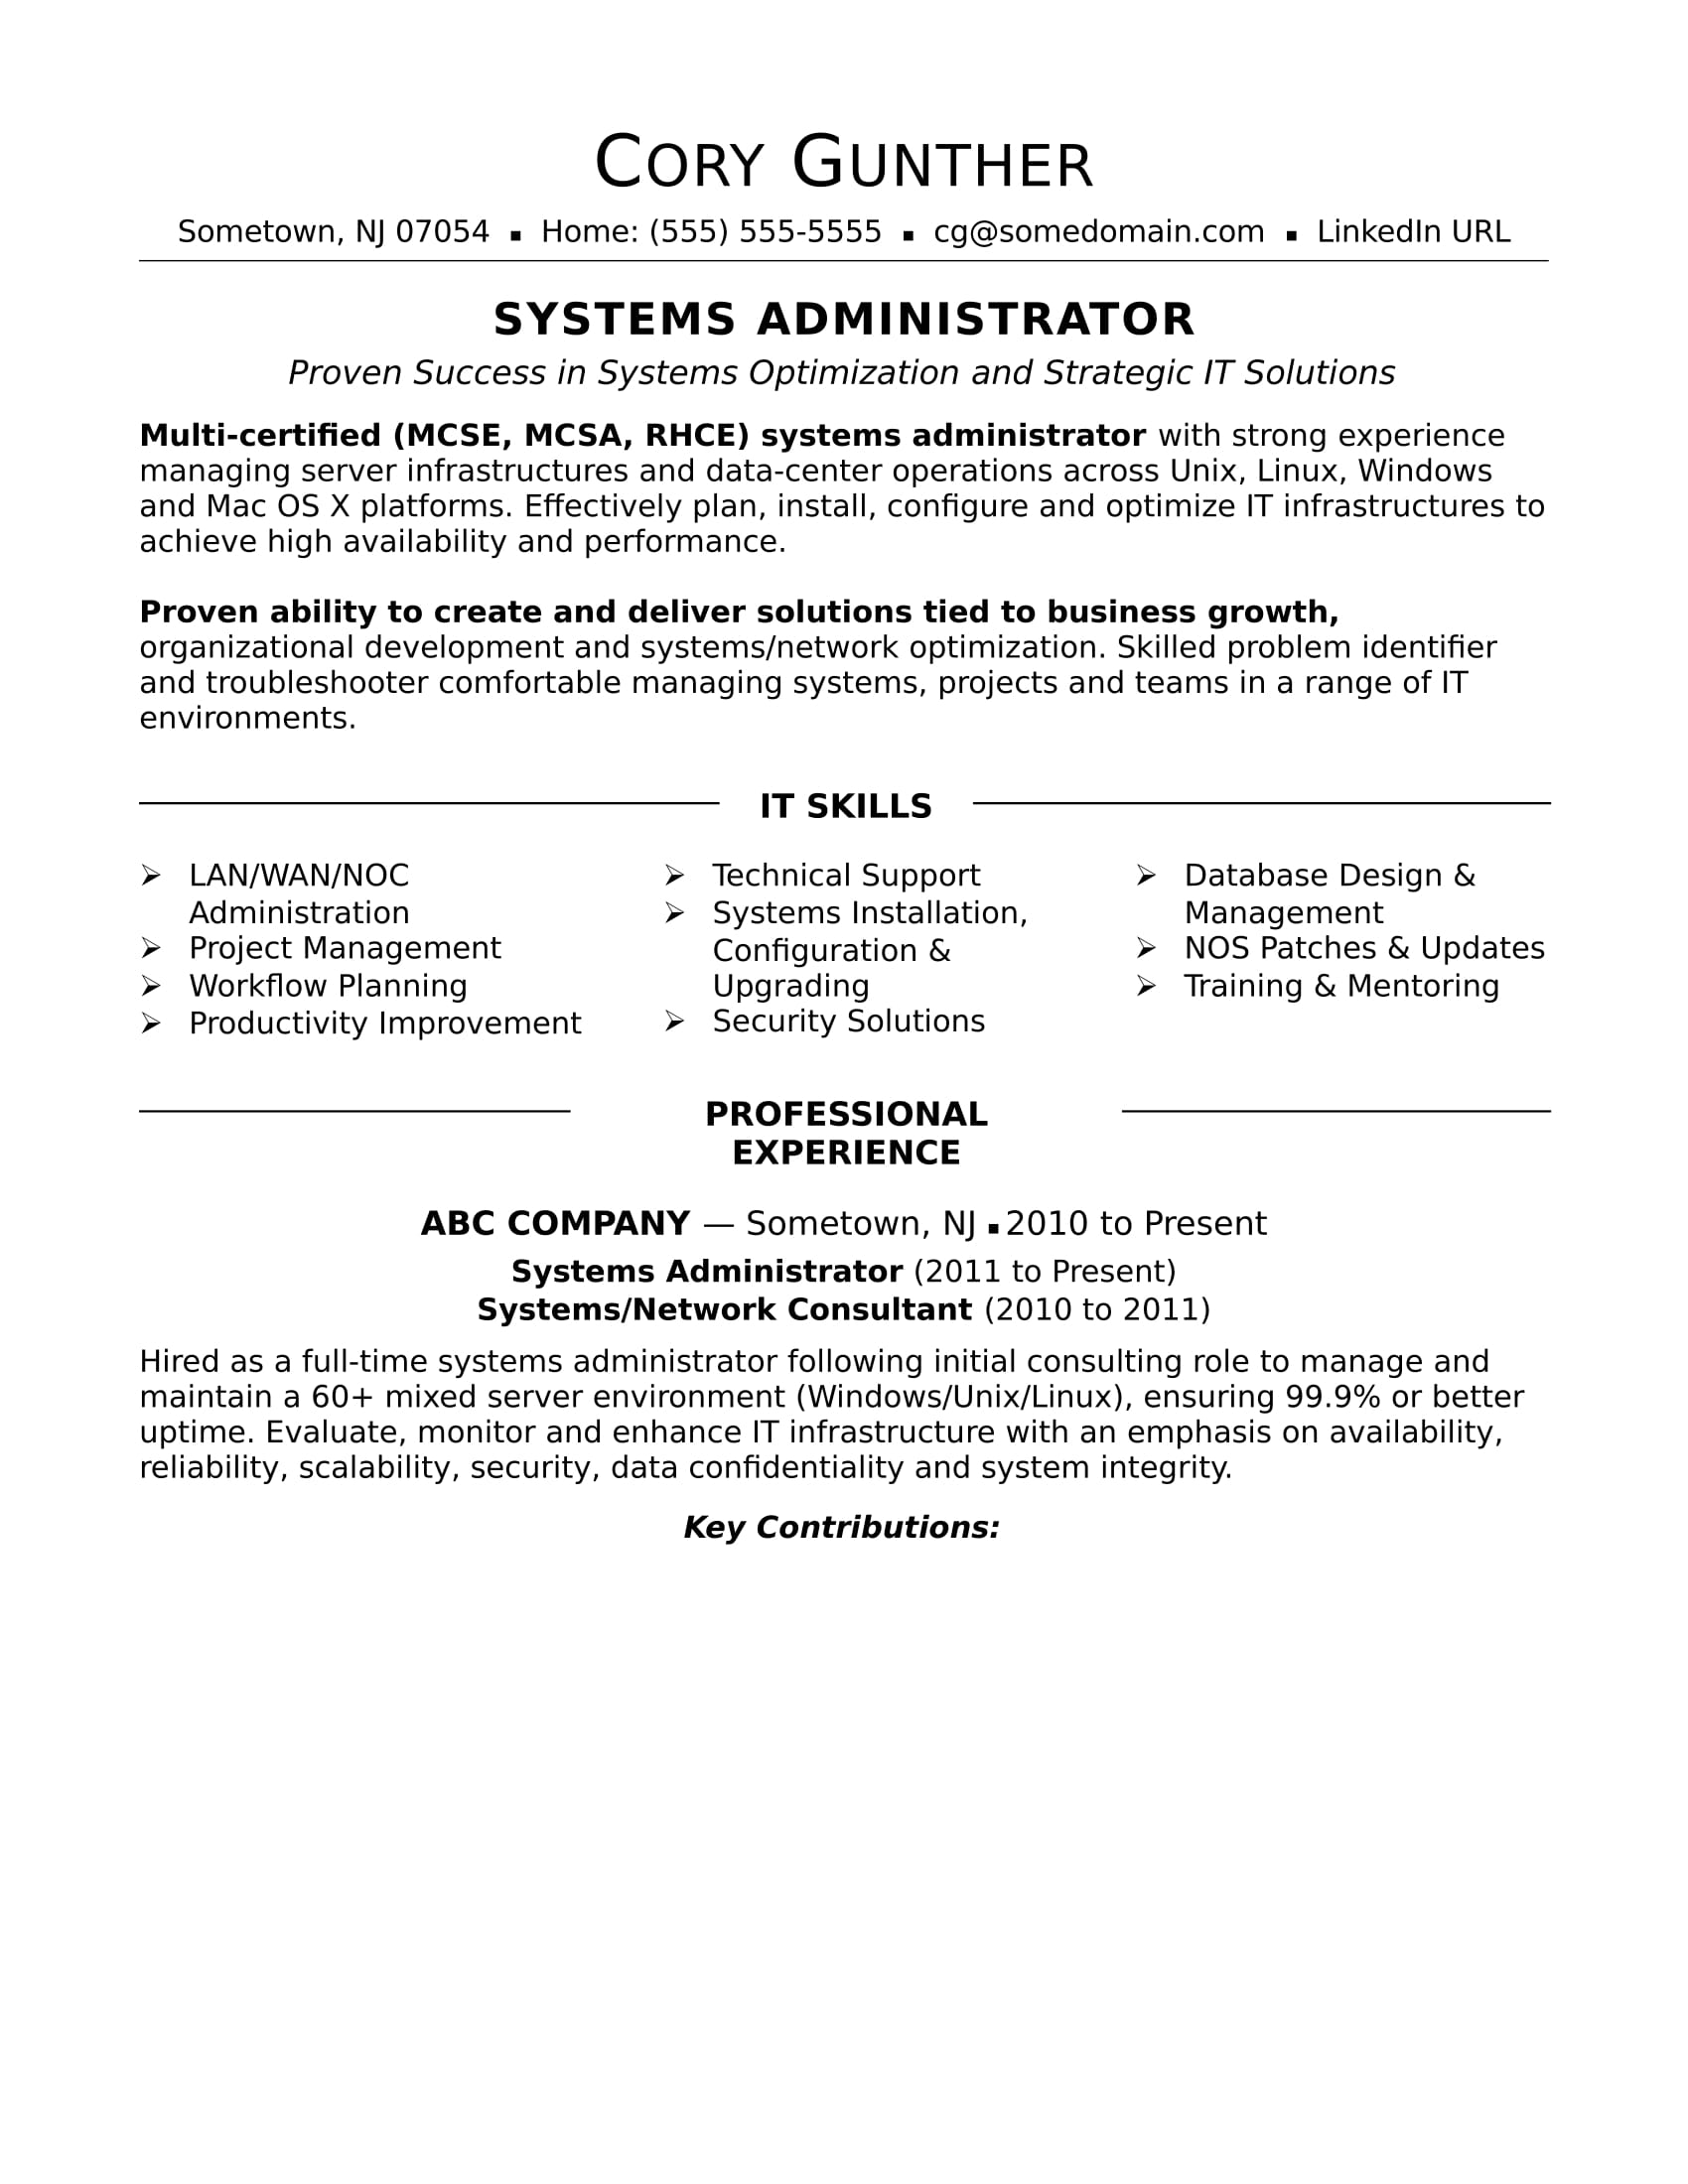 sample resume for an experienced systems administrator - Resumes For Servers